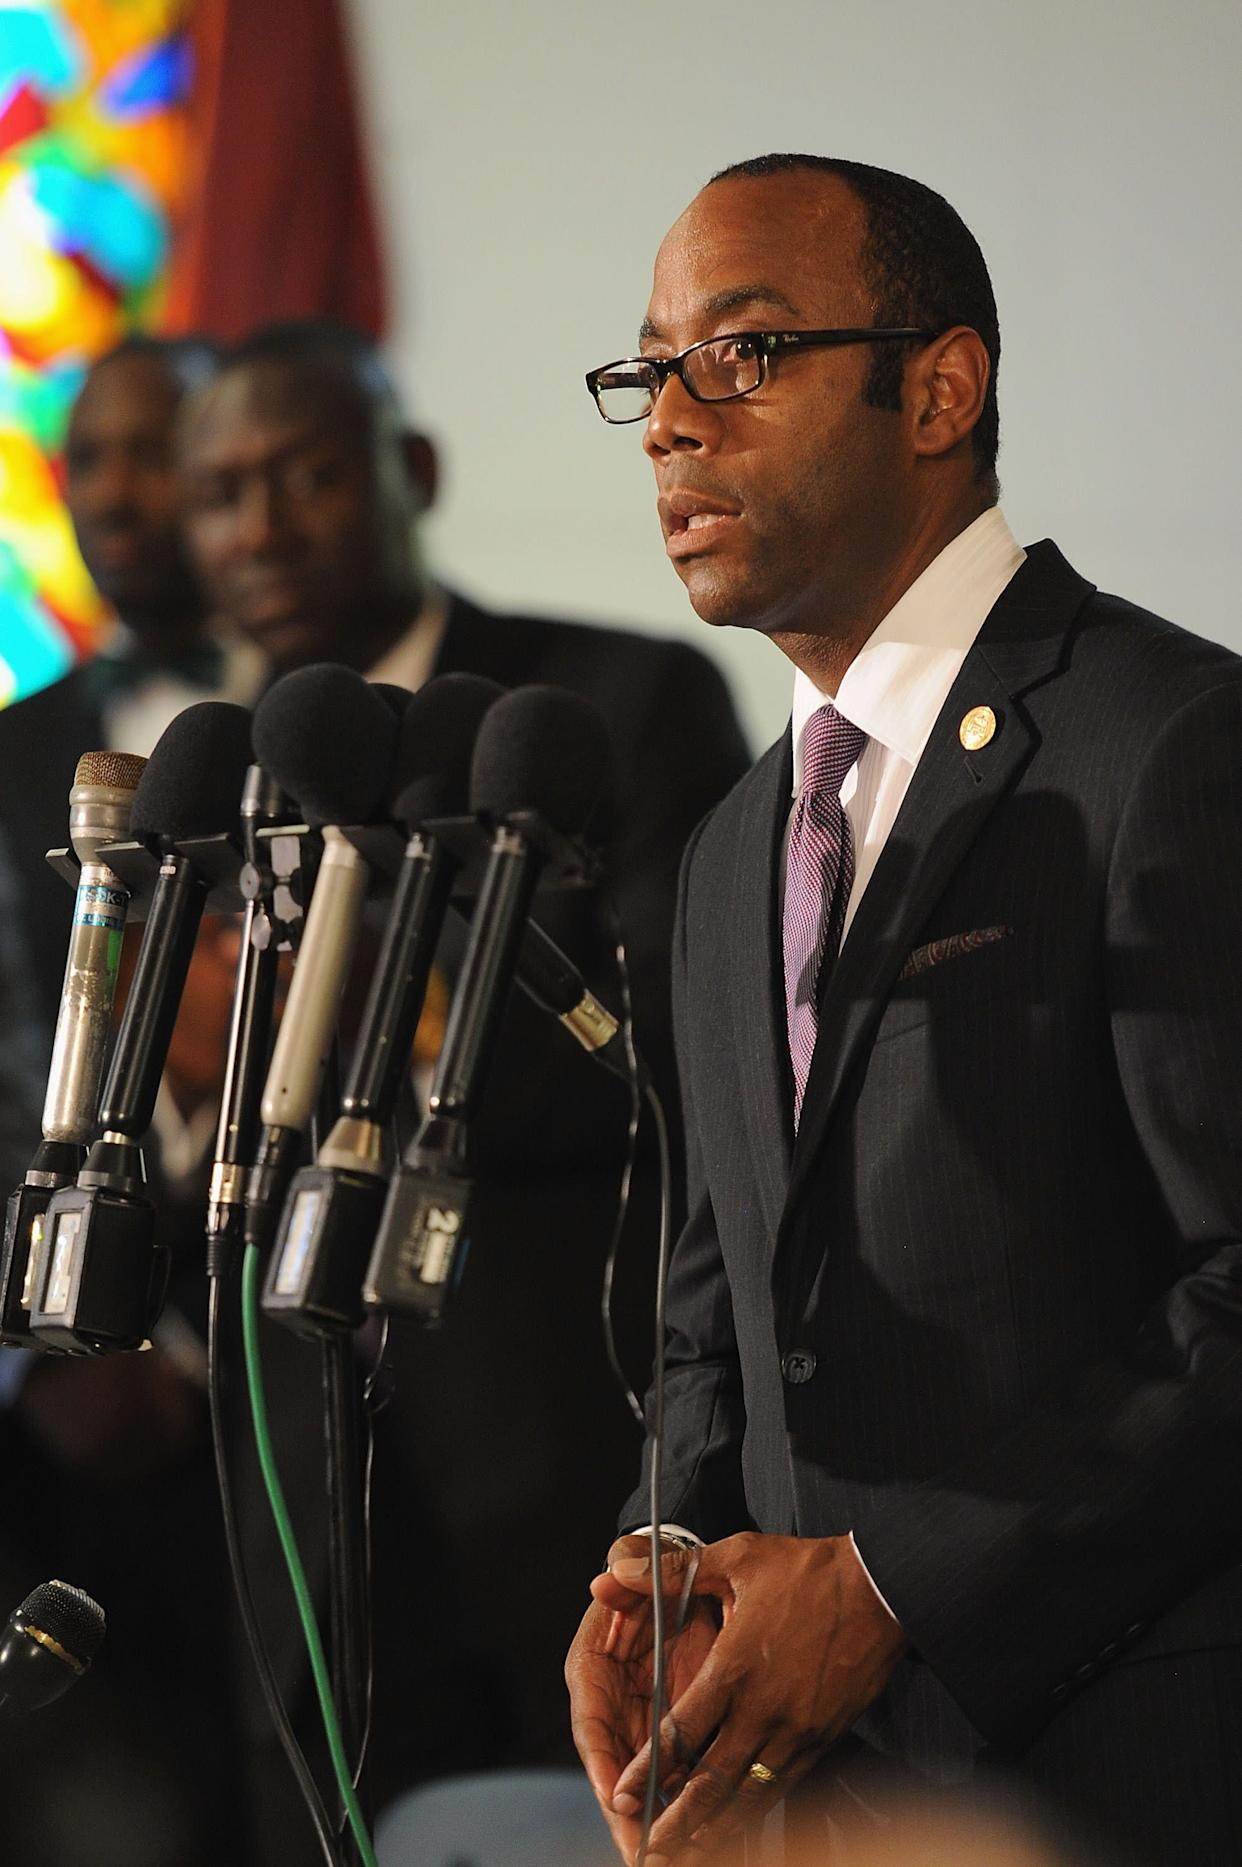 JENNINGS, MO - AUGUST 11: Cornell Williams Brooks, Chief Executive Officer of the National Association of the Advancement of Colored People (NAACP) speaks during a press conference regarding the shooting death of 18-year-old Michael Brown at Jennings Mason Temple Church of God In Christ, on August 11, 2014 in Jennings, Missouri. The fatal shooting by police of the unarmed teen in Ferguson, Missouri has sparked outrage in the community and set off civil unrest including looting and vandalism. (Photo by Michael B. Thomas/Getty Images)